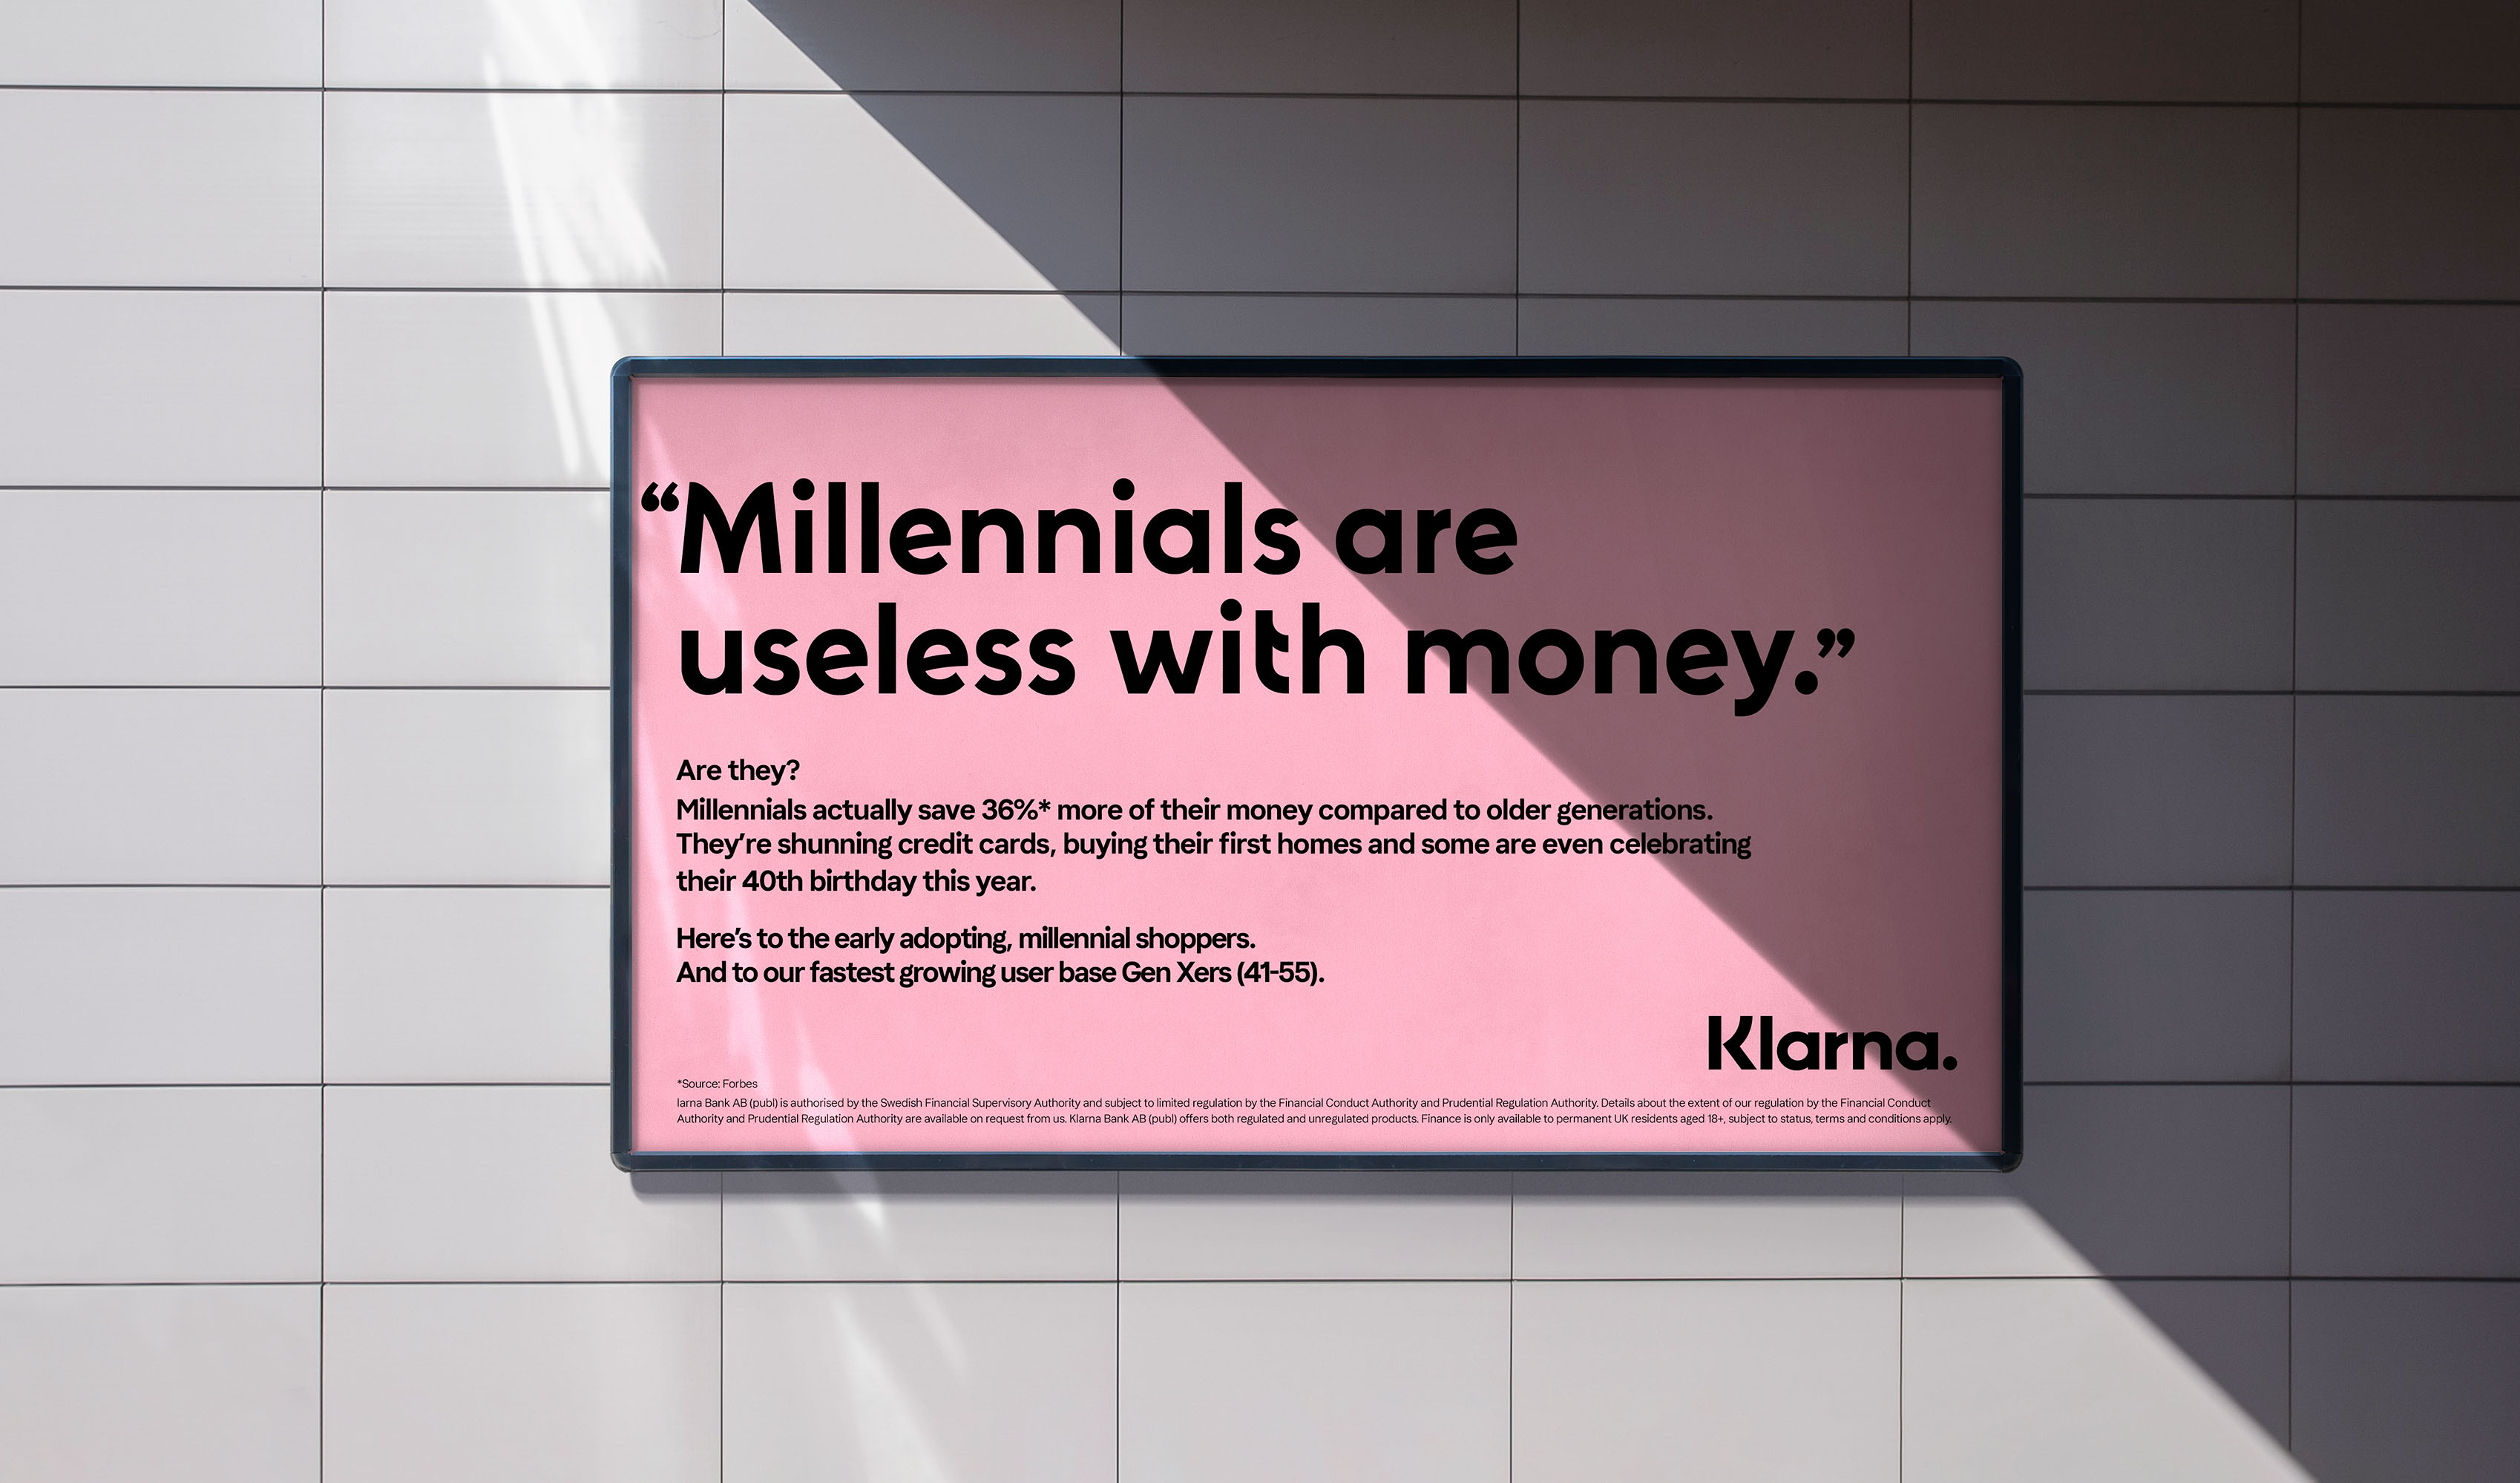 Klarna Launches New Campaign to Celebrate Consumers, Support Regulation and Challenge the Status Quo